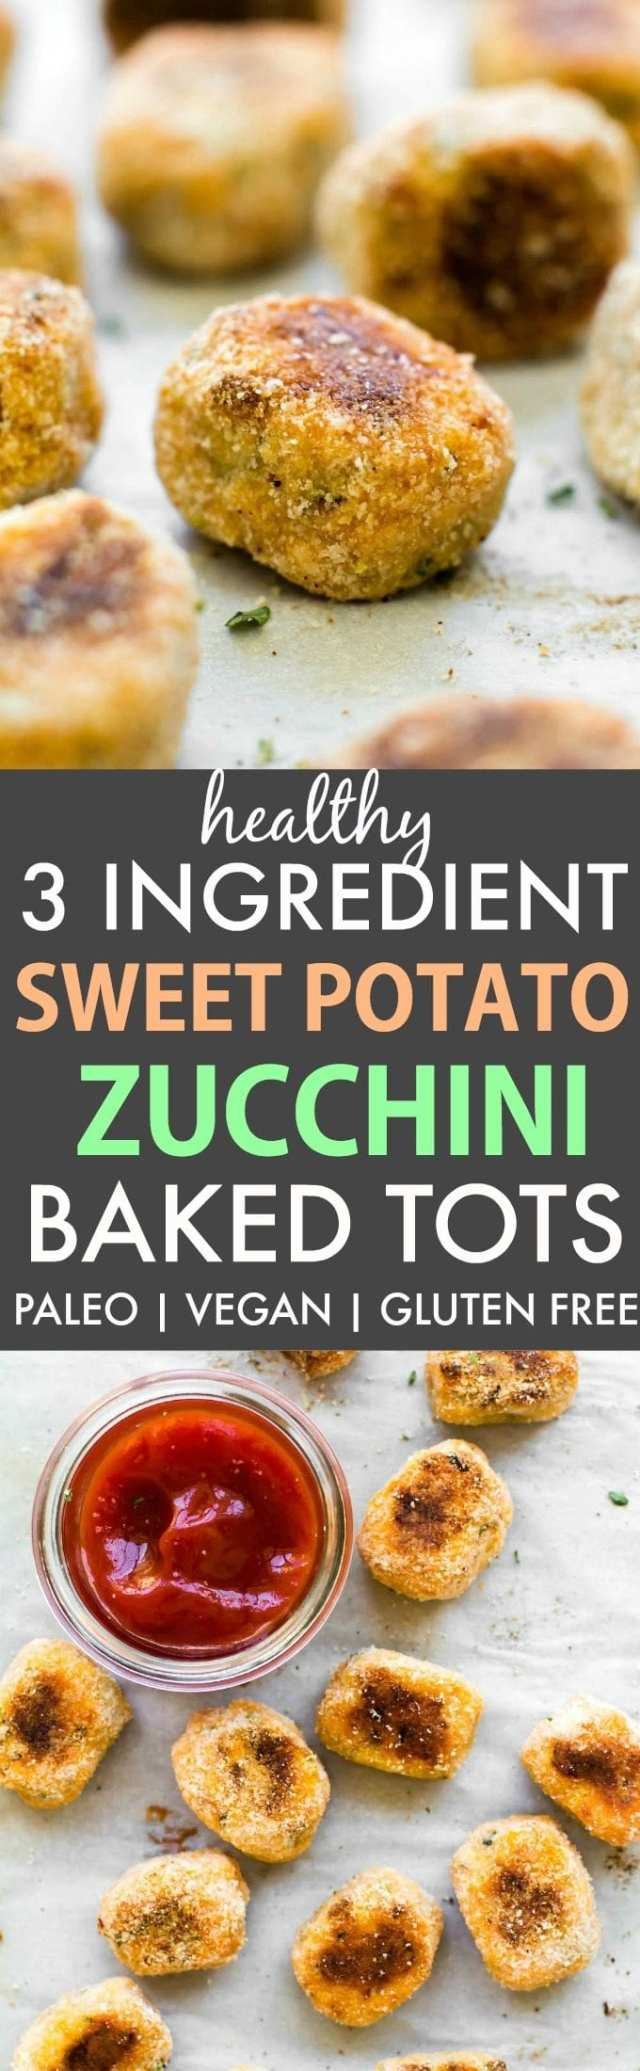 Healthy 3 Ingredient Sweet Potato Zucchini Baked Tots (V, GF, P, DF)- Crispy, easy and accidentally healthy low carb tots which are the perfect snack or veggie packed side dish- Oil free too! {vegan, gluten free, paleo recipe}- thebigmansworld.com